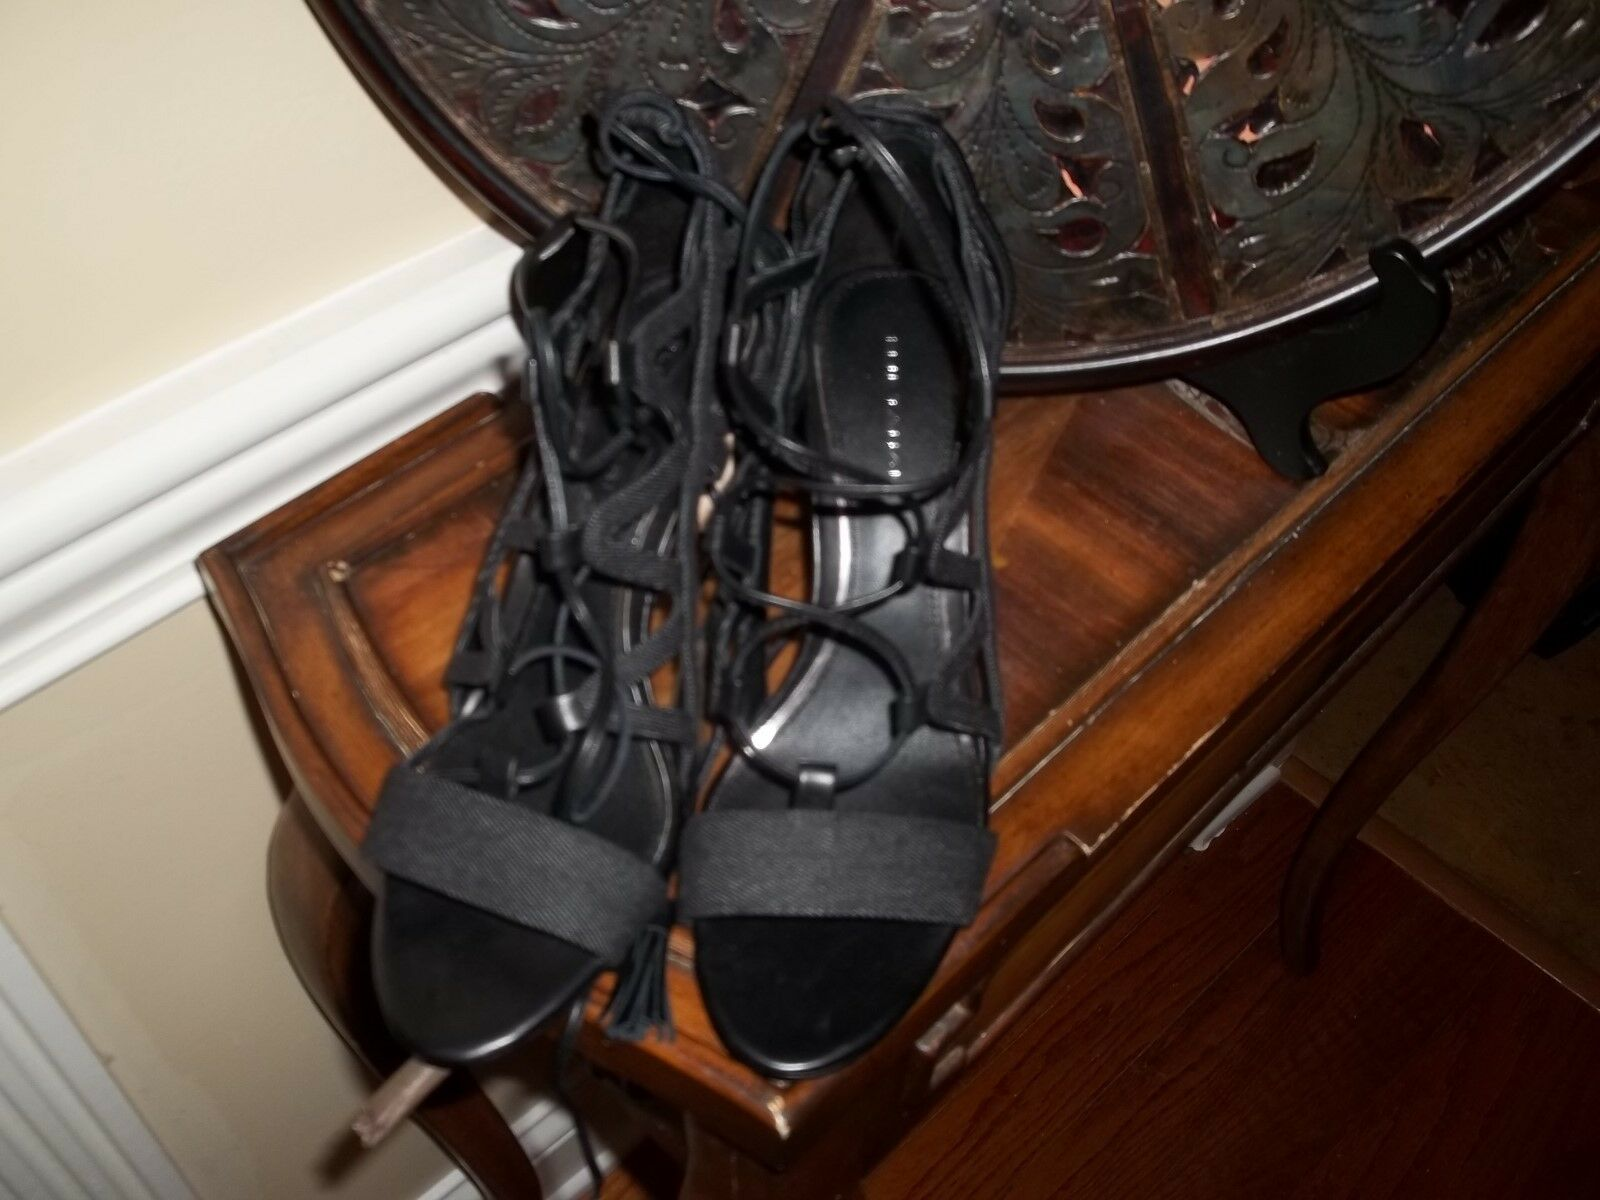 Nuova Elie Tahari nero Denim Lace Up Strappy High Heel  scarpe 8.5  Prezzo al piano